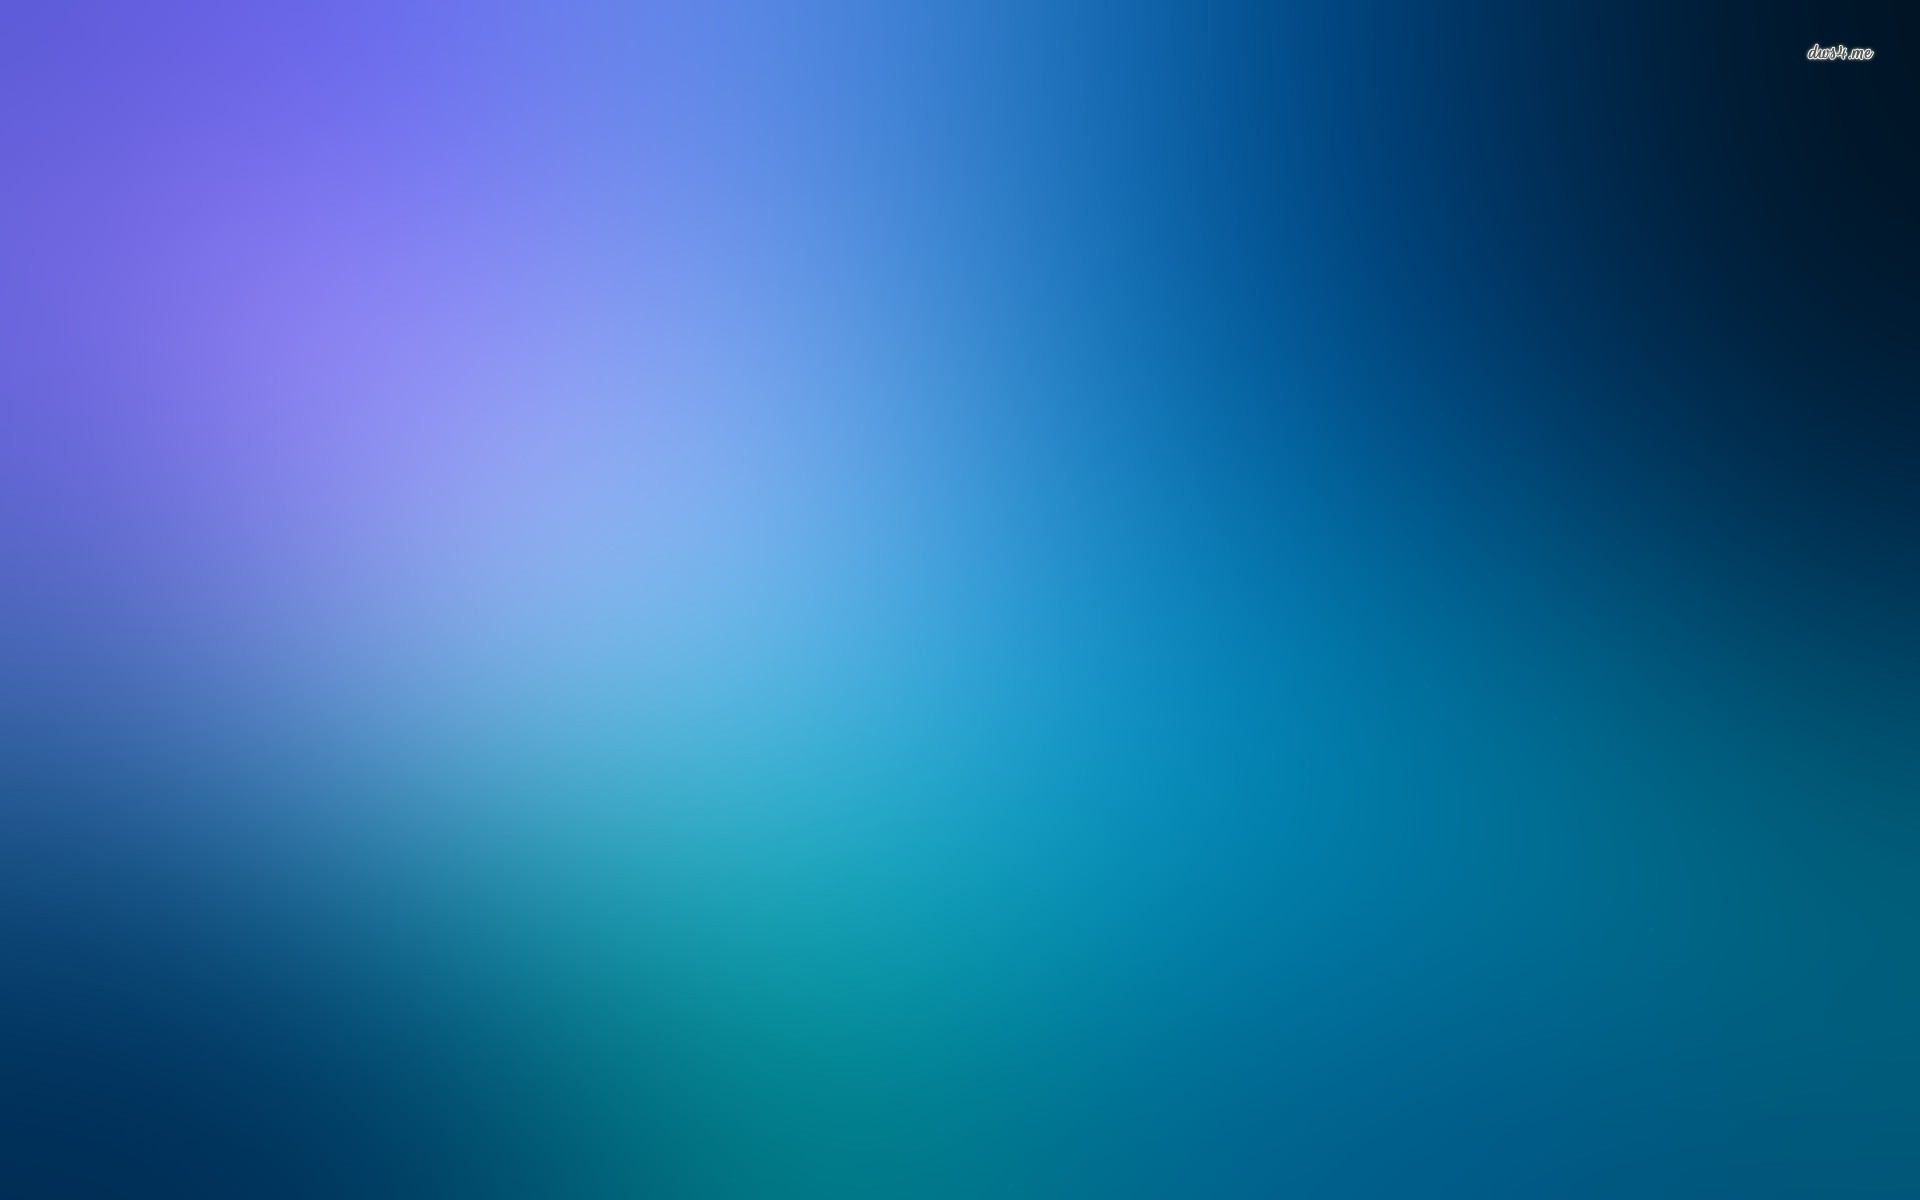 Blue Gradient Wallpaper 85 Images